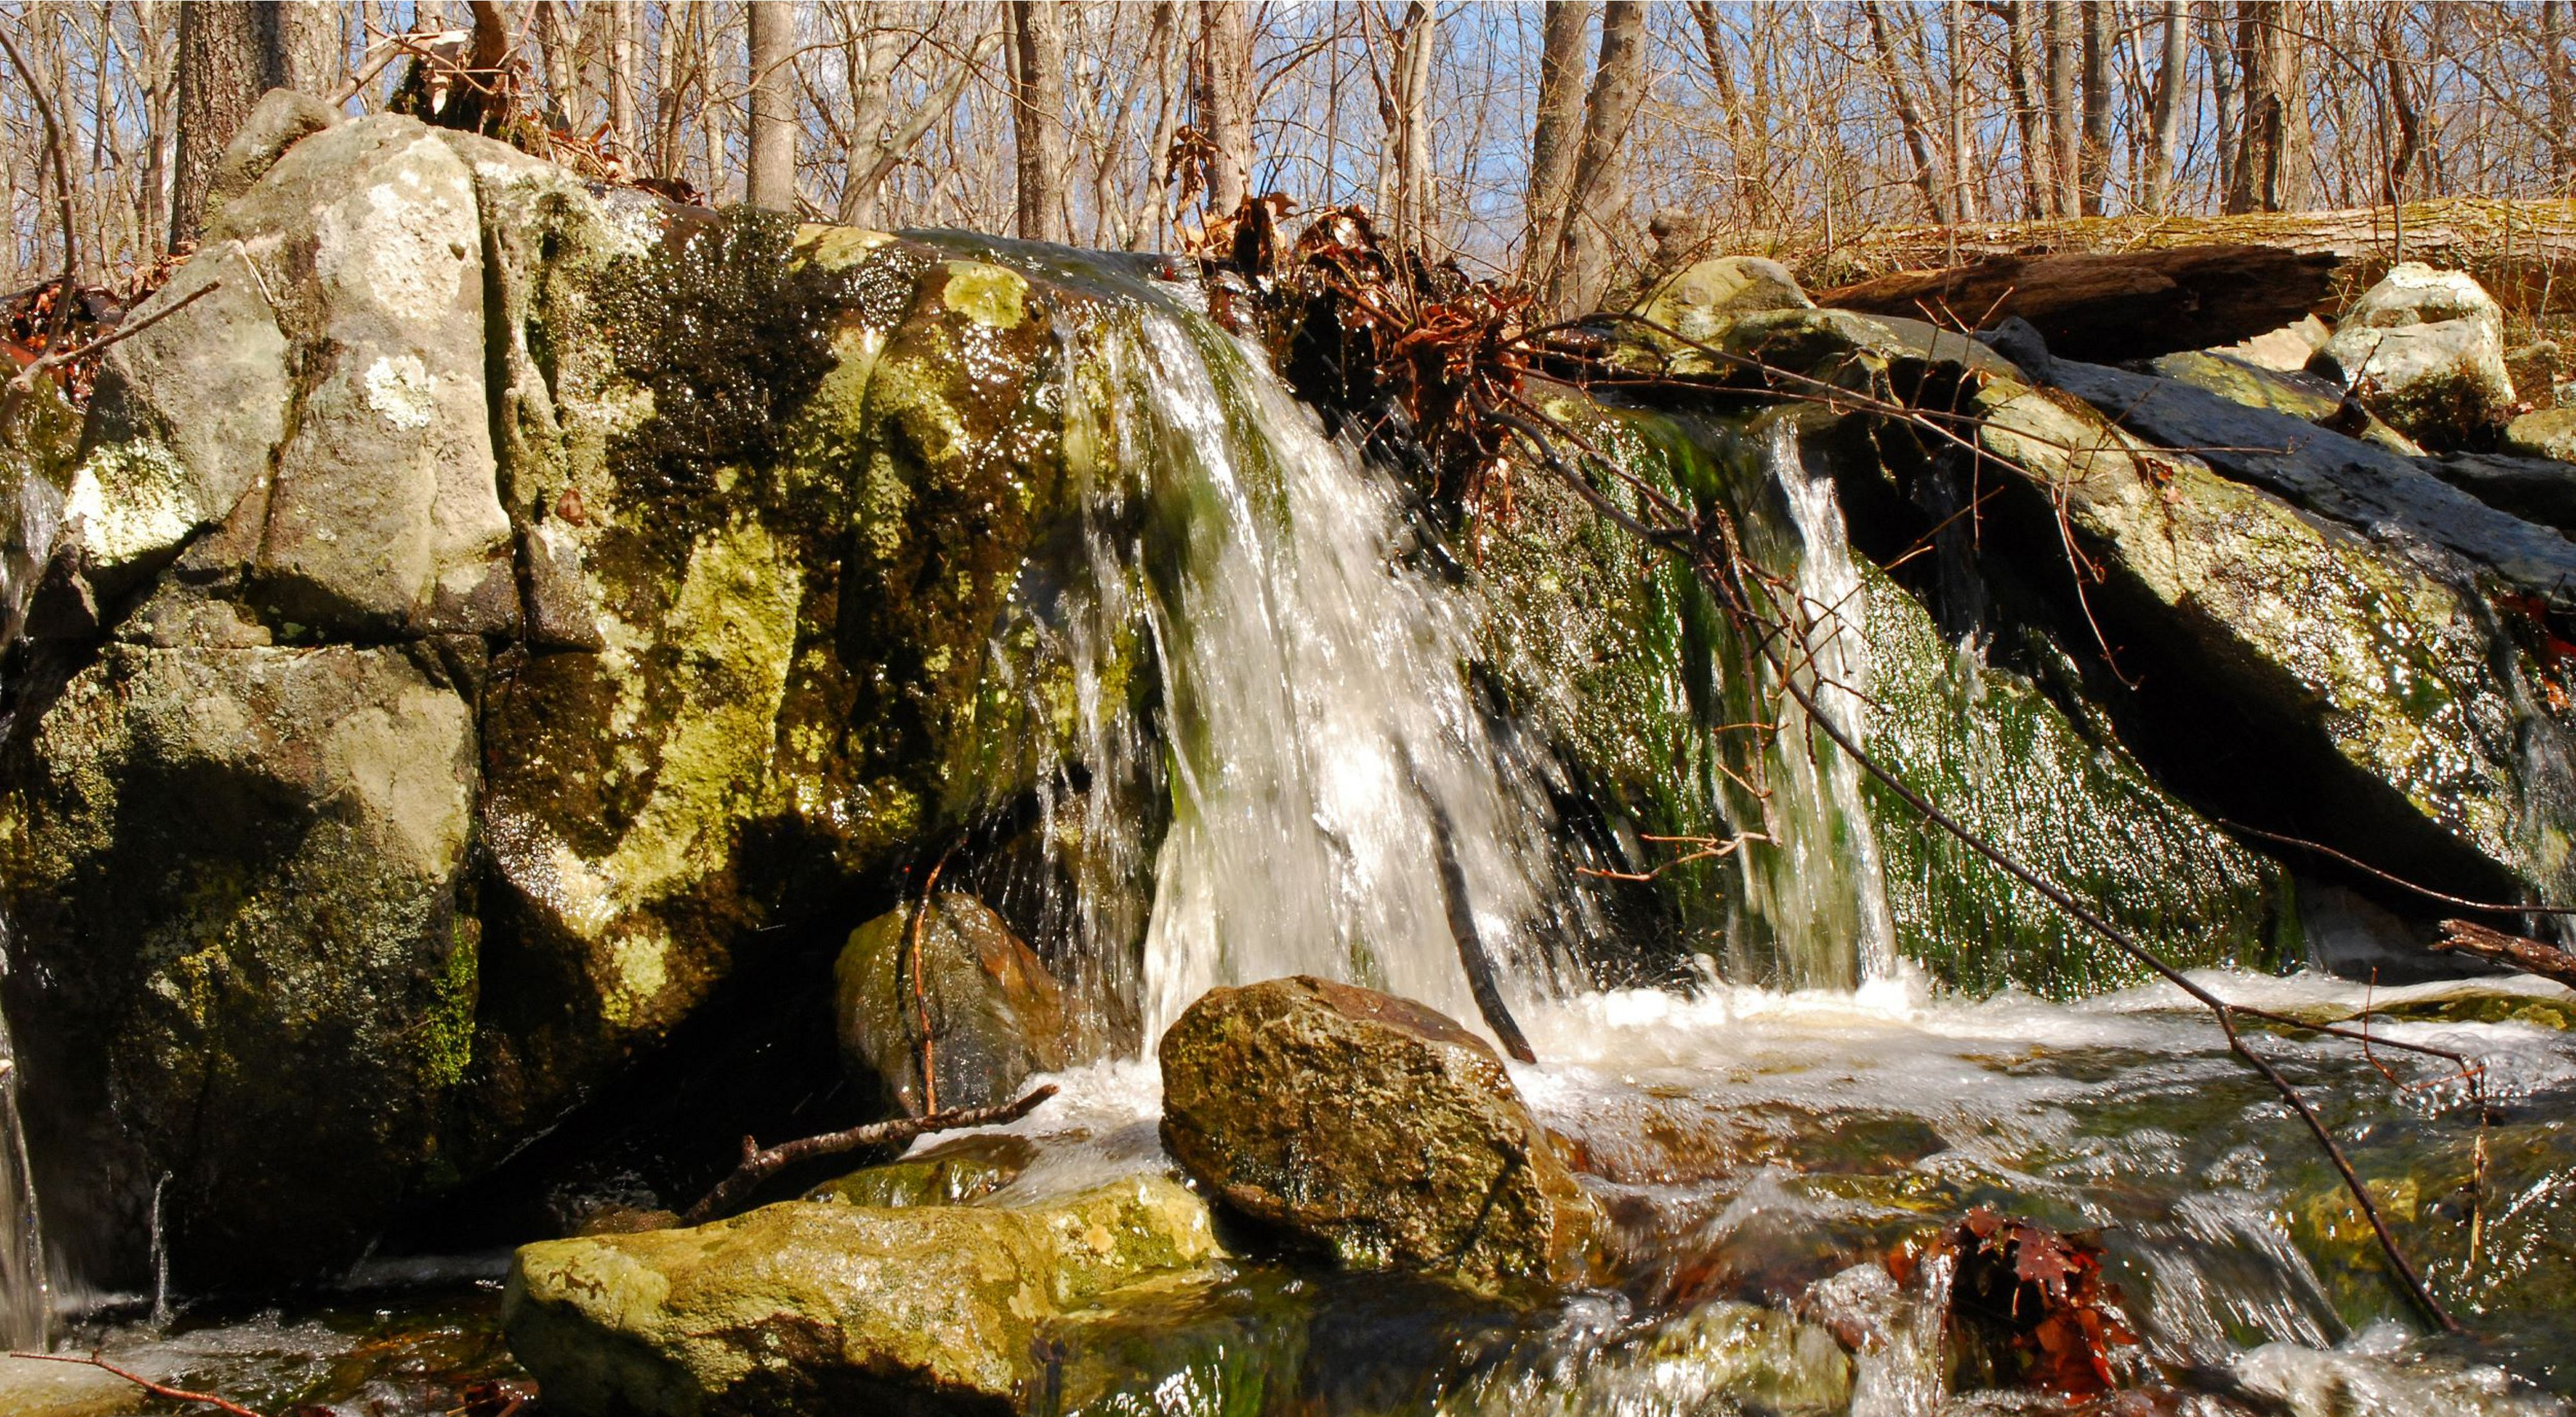 Close-up of a small granite outcrop with water from a seasonal stream spilling over the top.